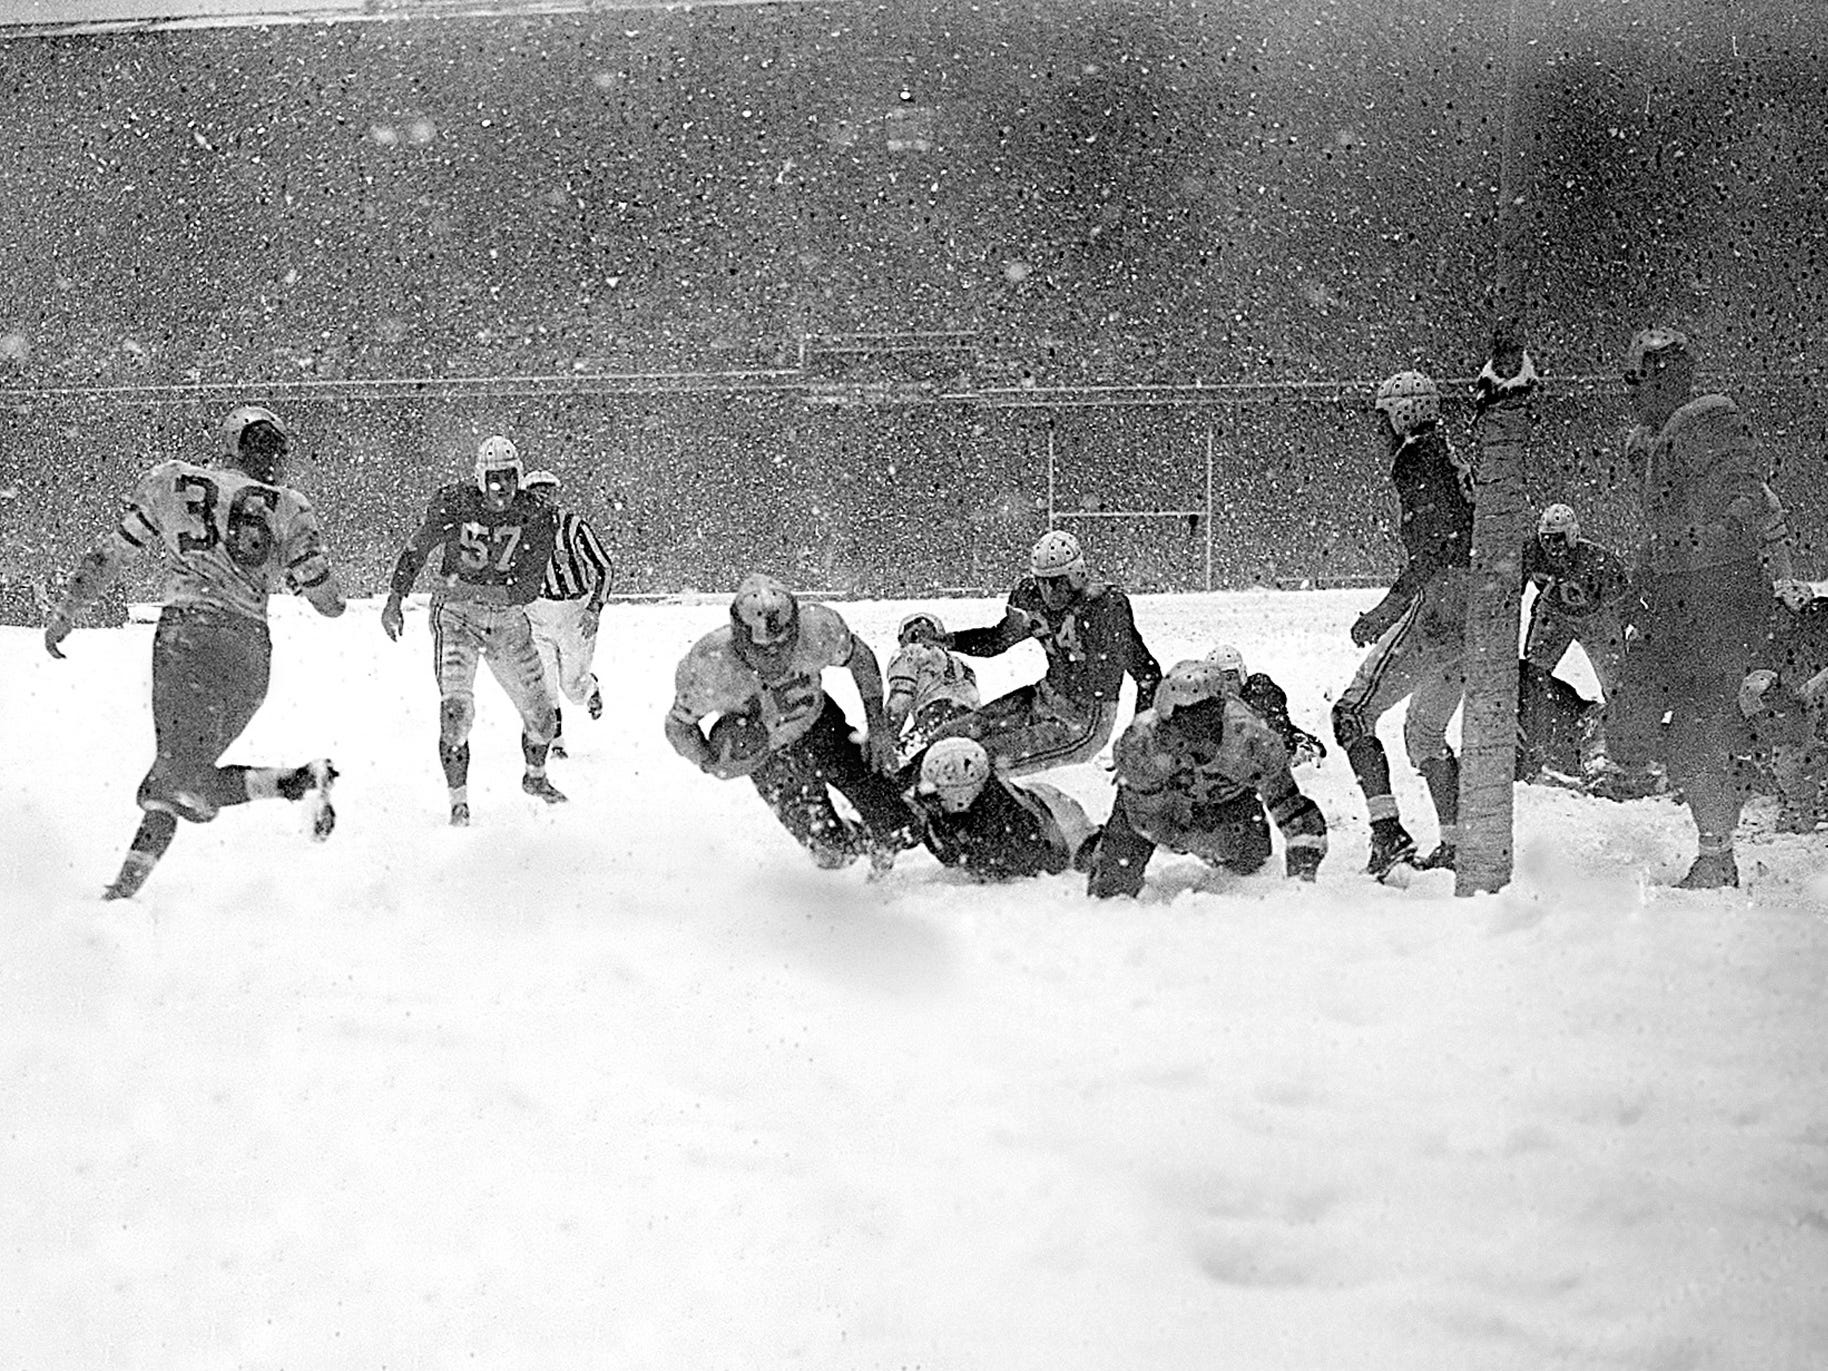 Dec. 19, 1948: Steve Van Buren (15) plunges over the goal line for the only touchdown in the Philadelphia Eagles' 7-0 win over the Chicago Cardinals in the 1948 NFL Championship Game at Shibe Park. The game was played during a significant snowfall.